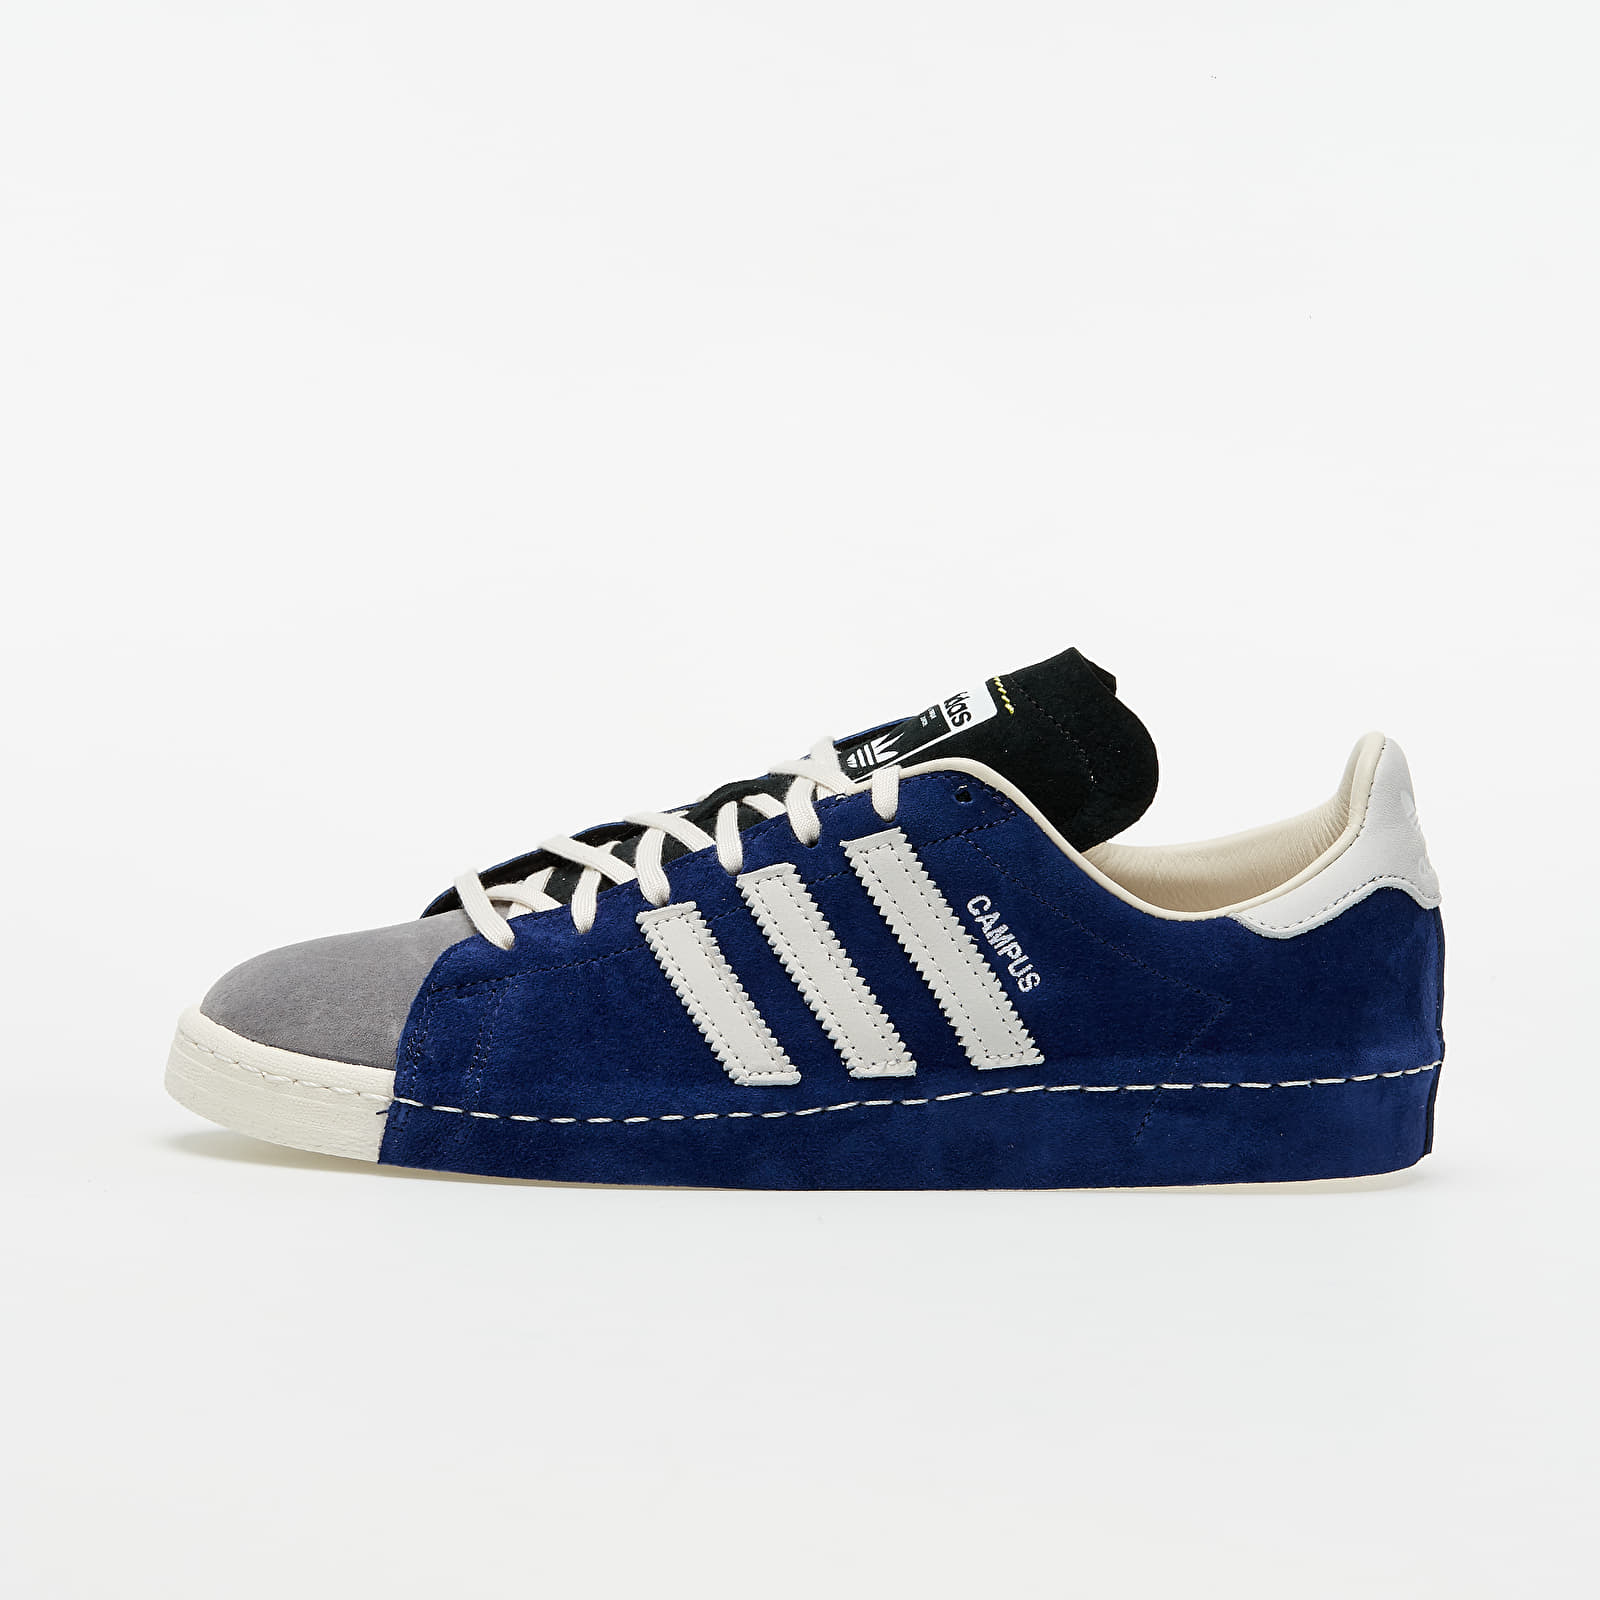 adidas Consortium x Recouture Campus 80s SH Dark Blue/ Chalk White/ Core black EUR 38